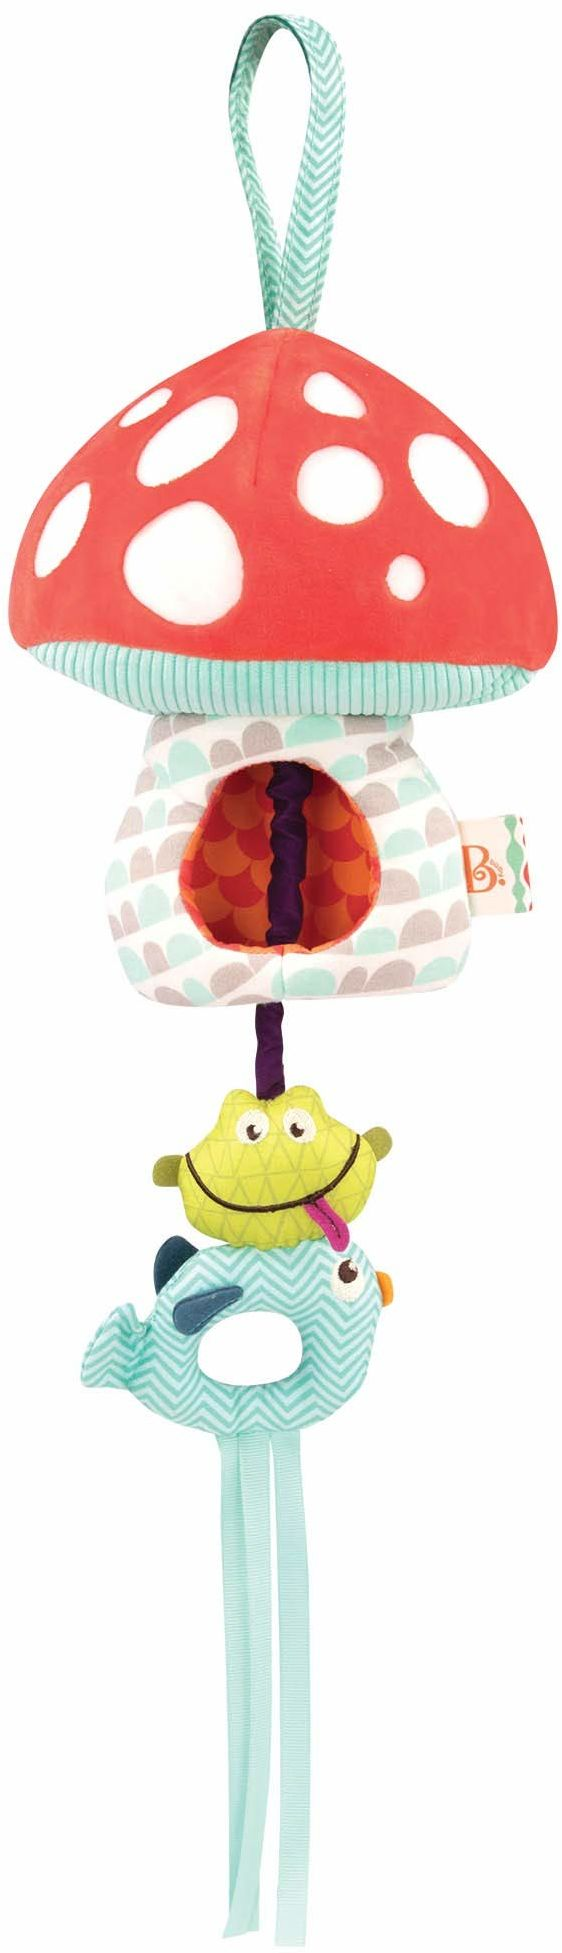 B. toys by Battat BX1564Z B. Toadstool Music Box with Lights